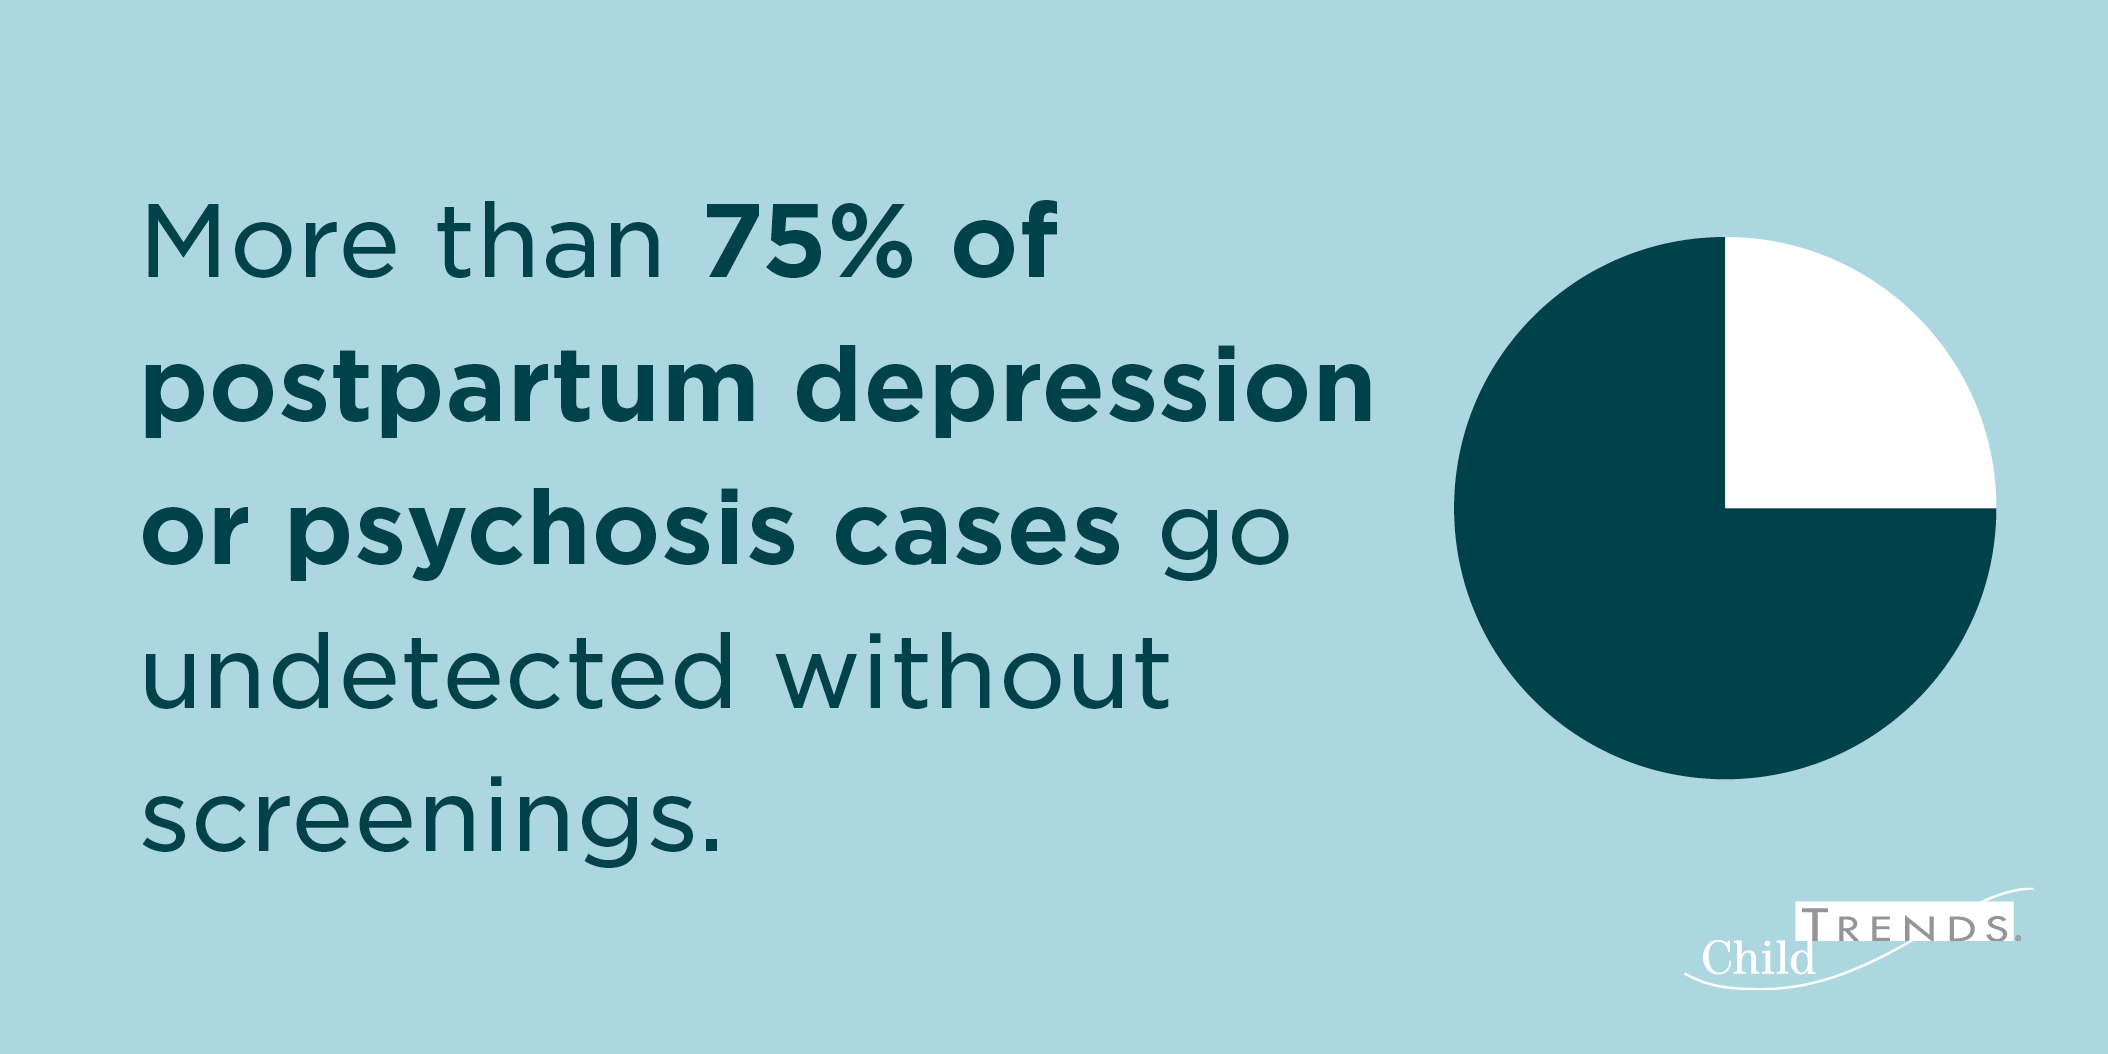 Expanding screening for postpartum depression: A summary of the research and data